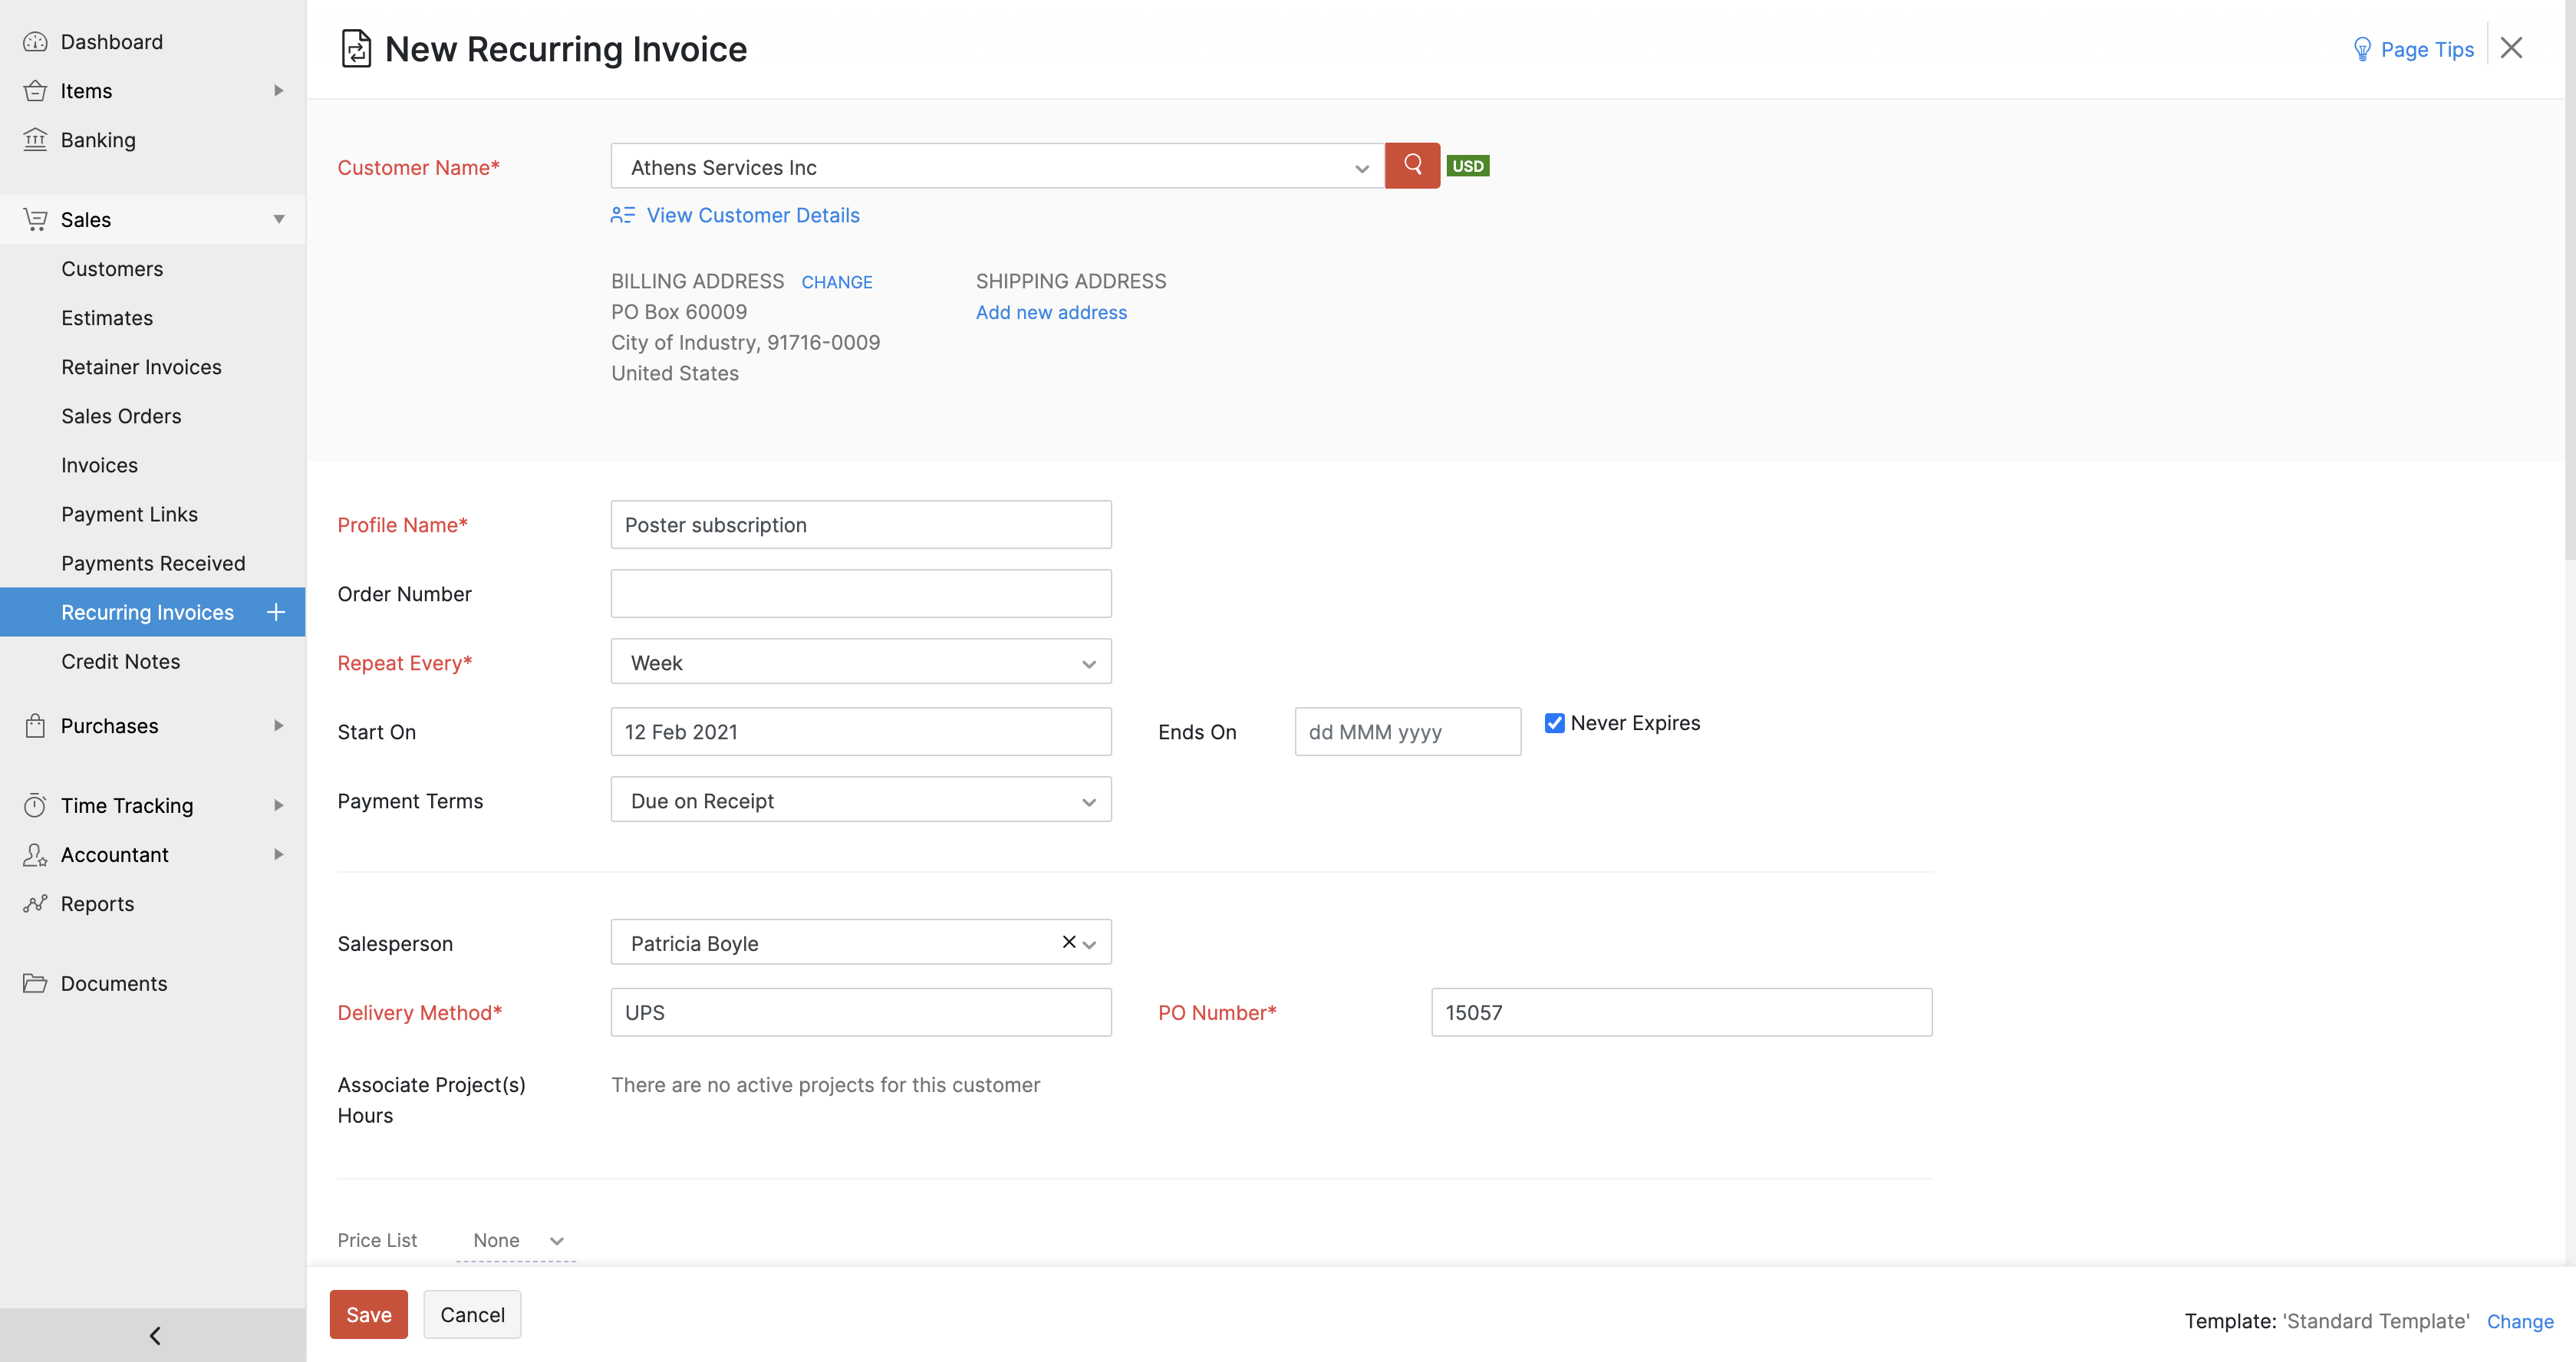 Create new recurring invoice